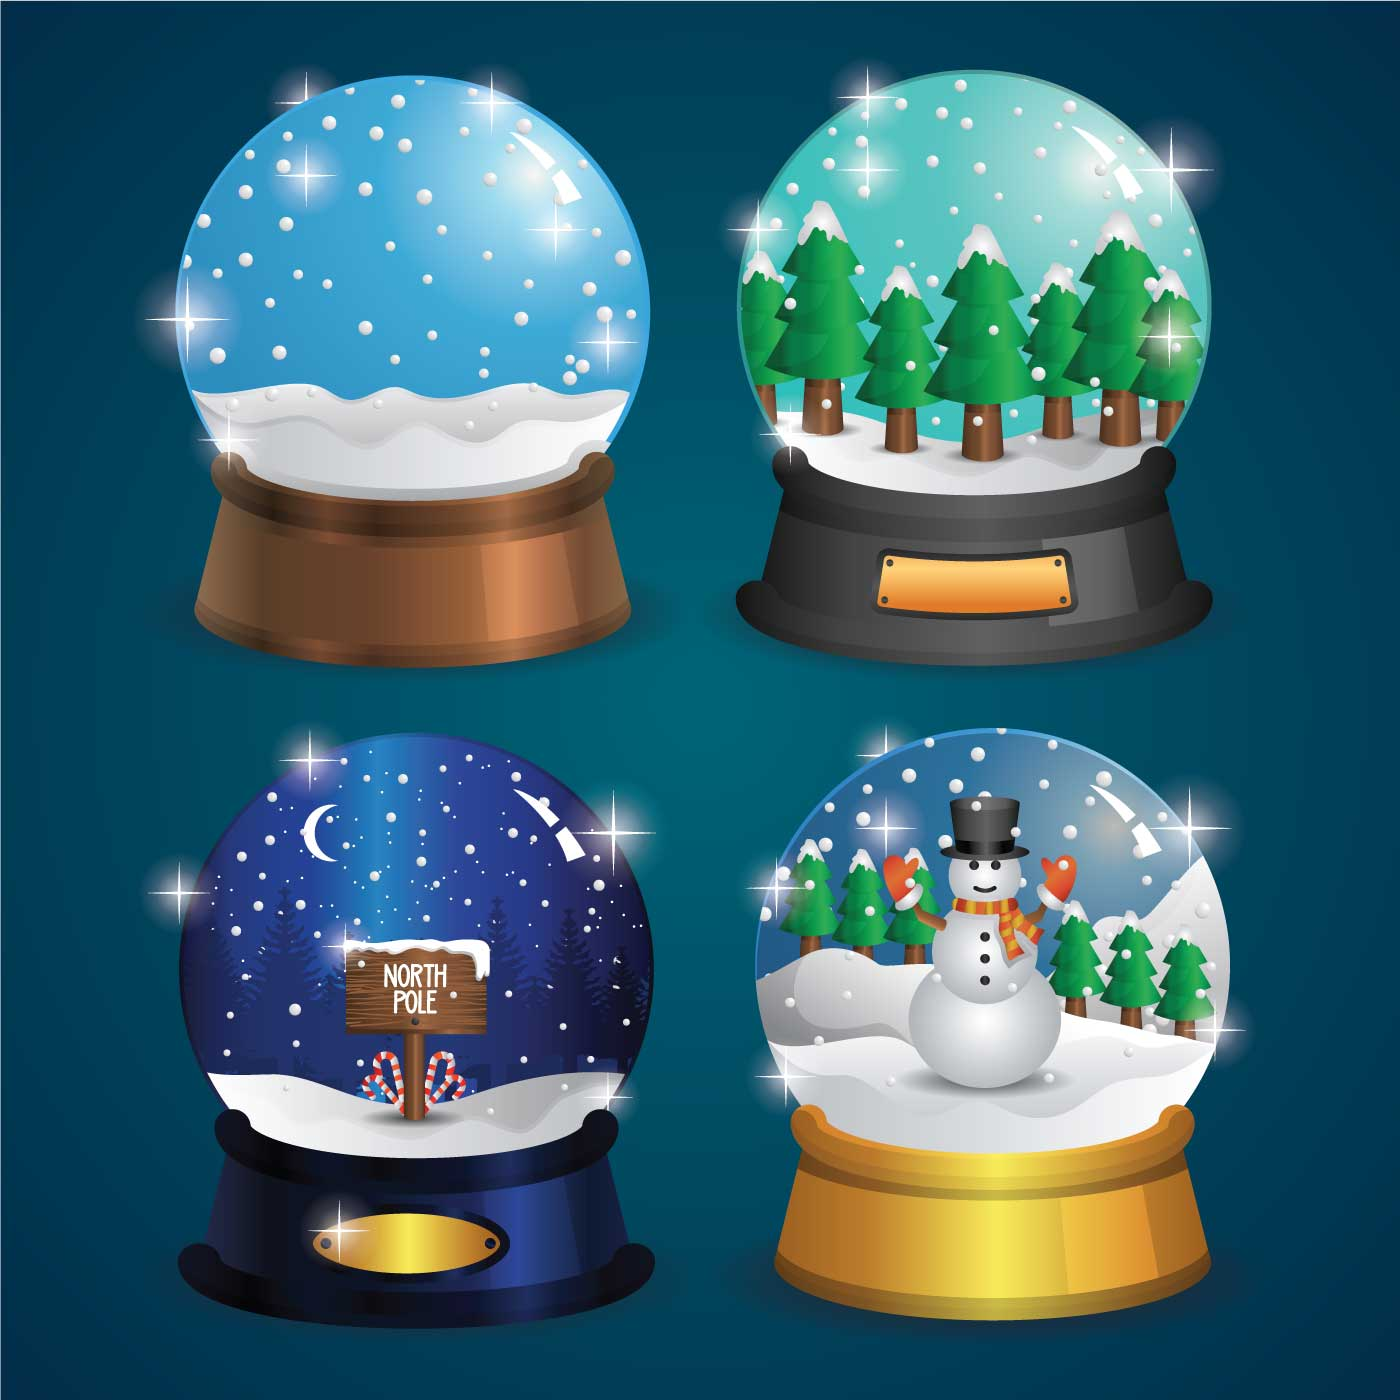 House Inside Decoration Realistic Snow Globe Vector - Download Free Vector Art